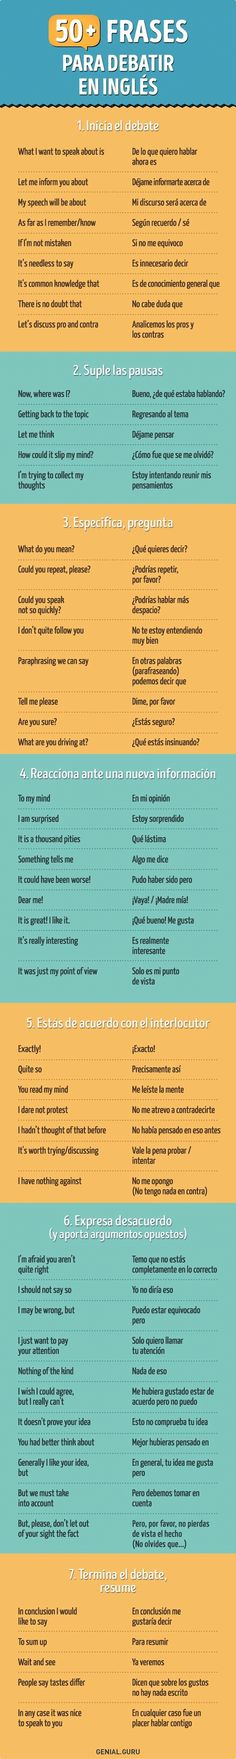 Best spanish software help learning spanish,how can i learn spanish language how to start learning spanish,learn spanish in learn spanish now. English Time, English Course, Spanish English, English Idioms, English Study, English Class, English Lessons, English Vocabulary, English Grammar